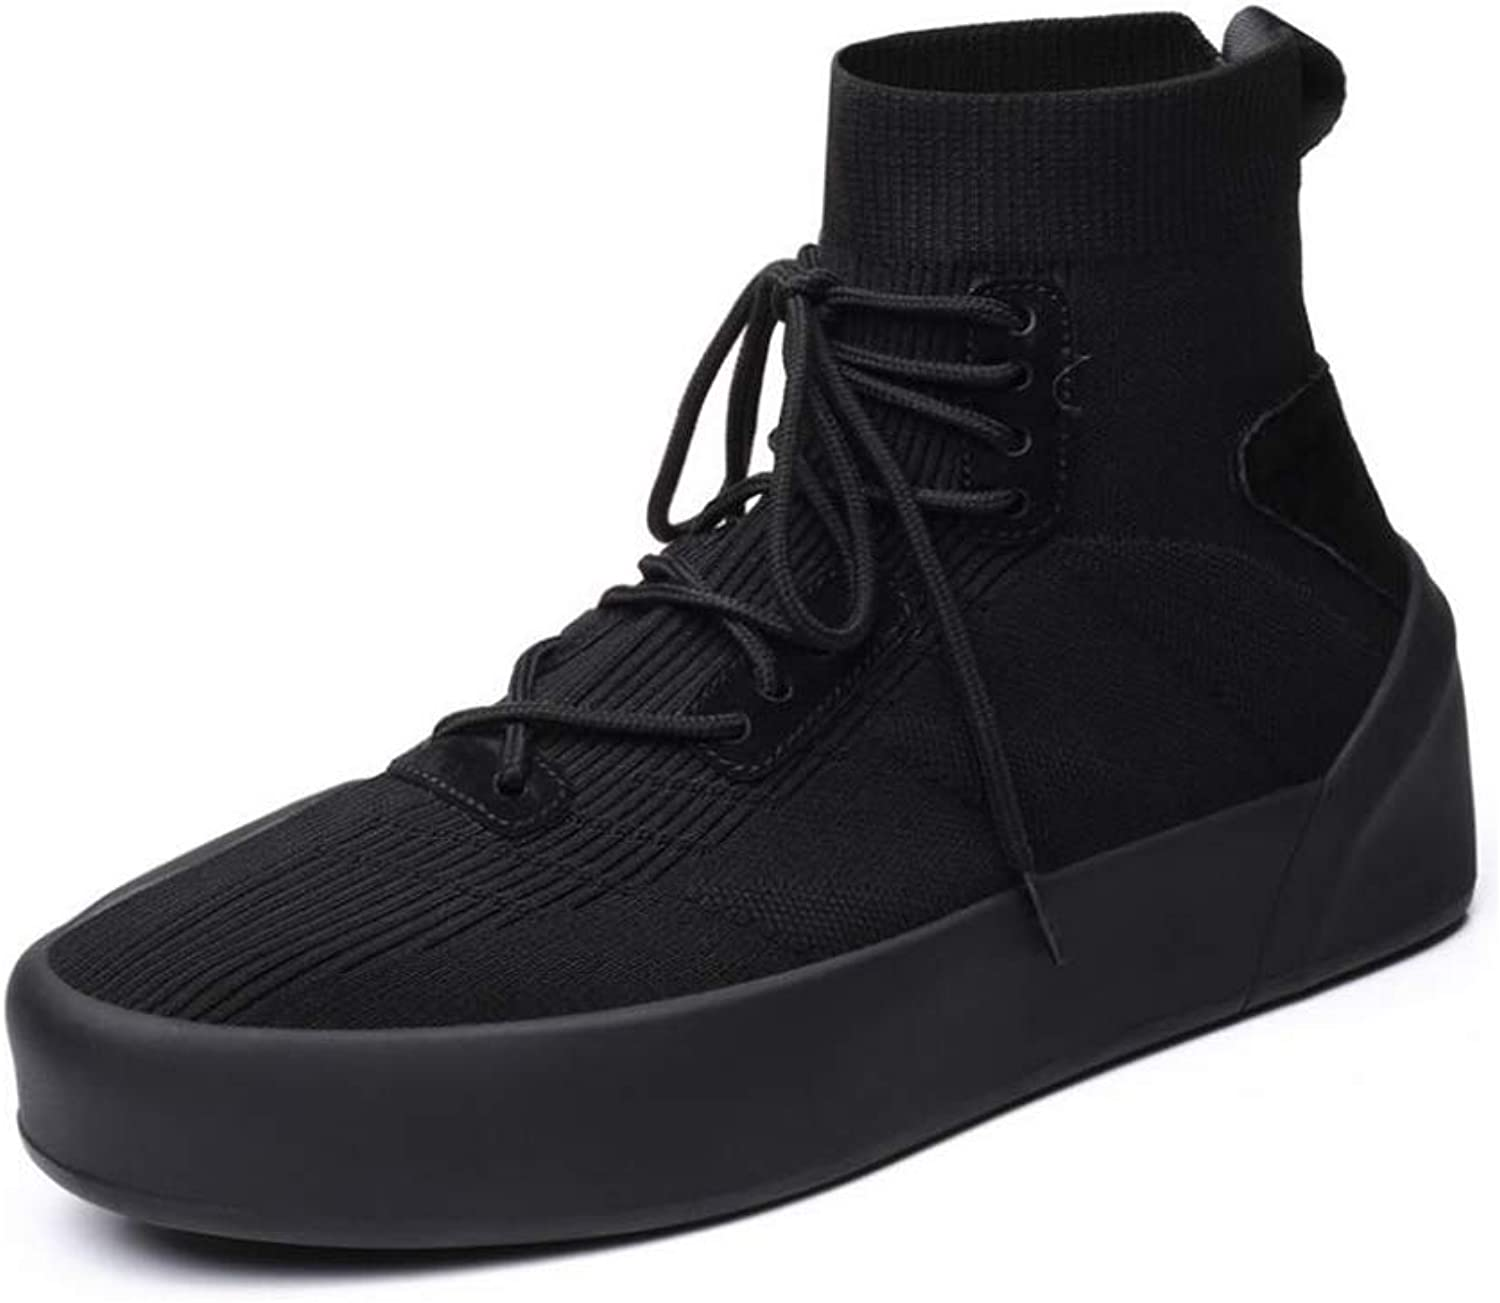 Men's shoes, Spring Autumn Fashion Sneakers Sports shoes Casual Elastic Fly Woven High-Top Walking Running shoes,B,38